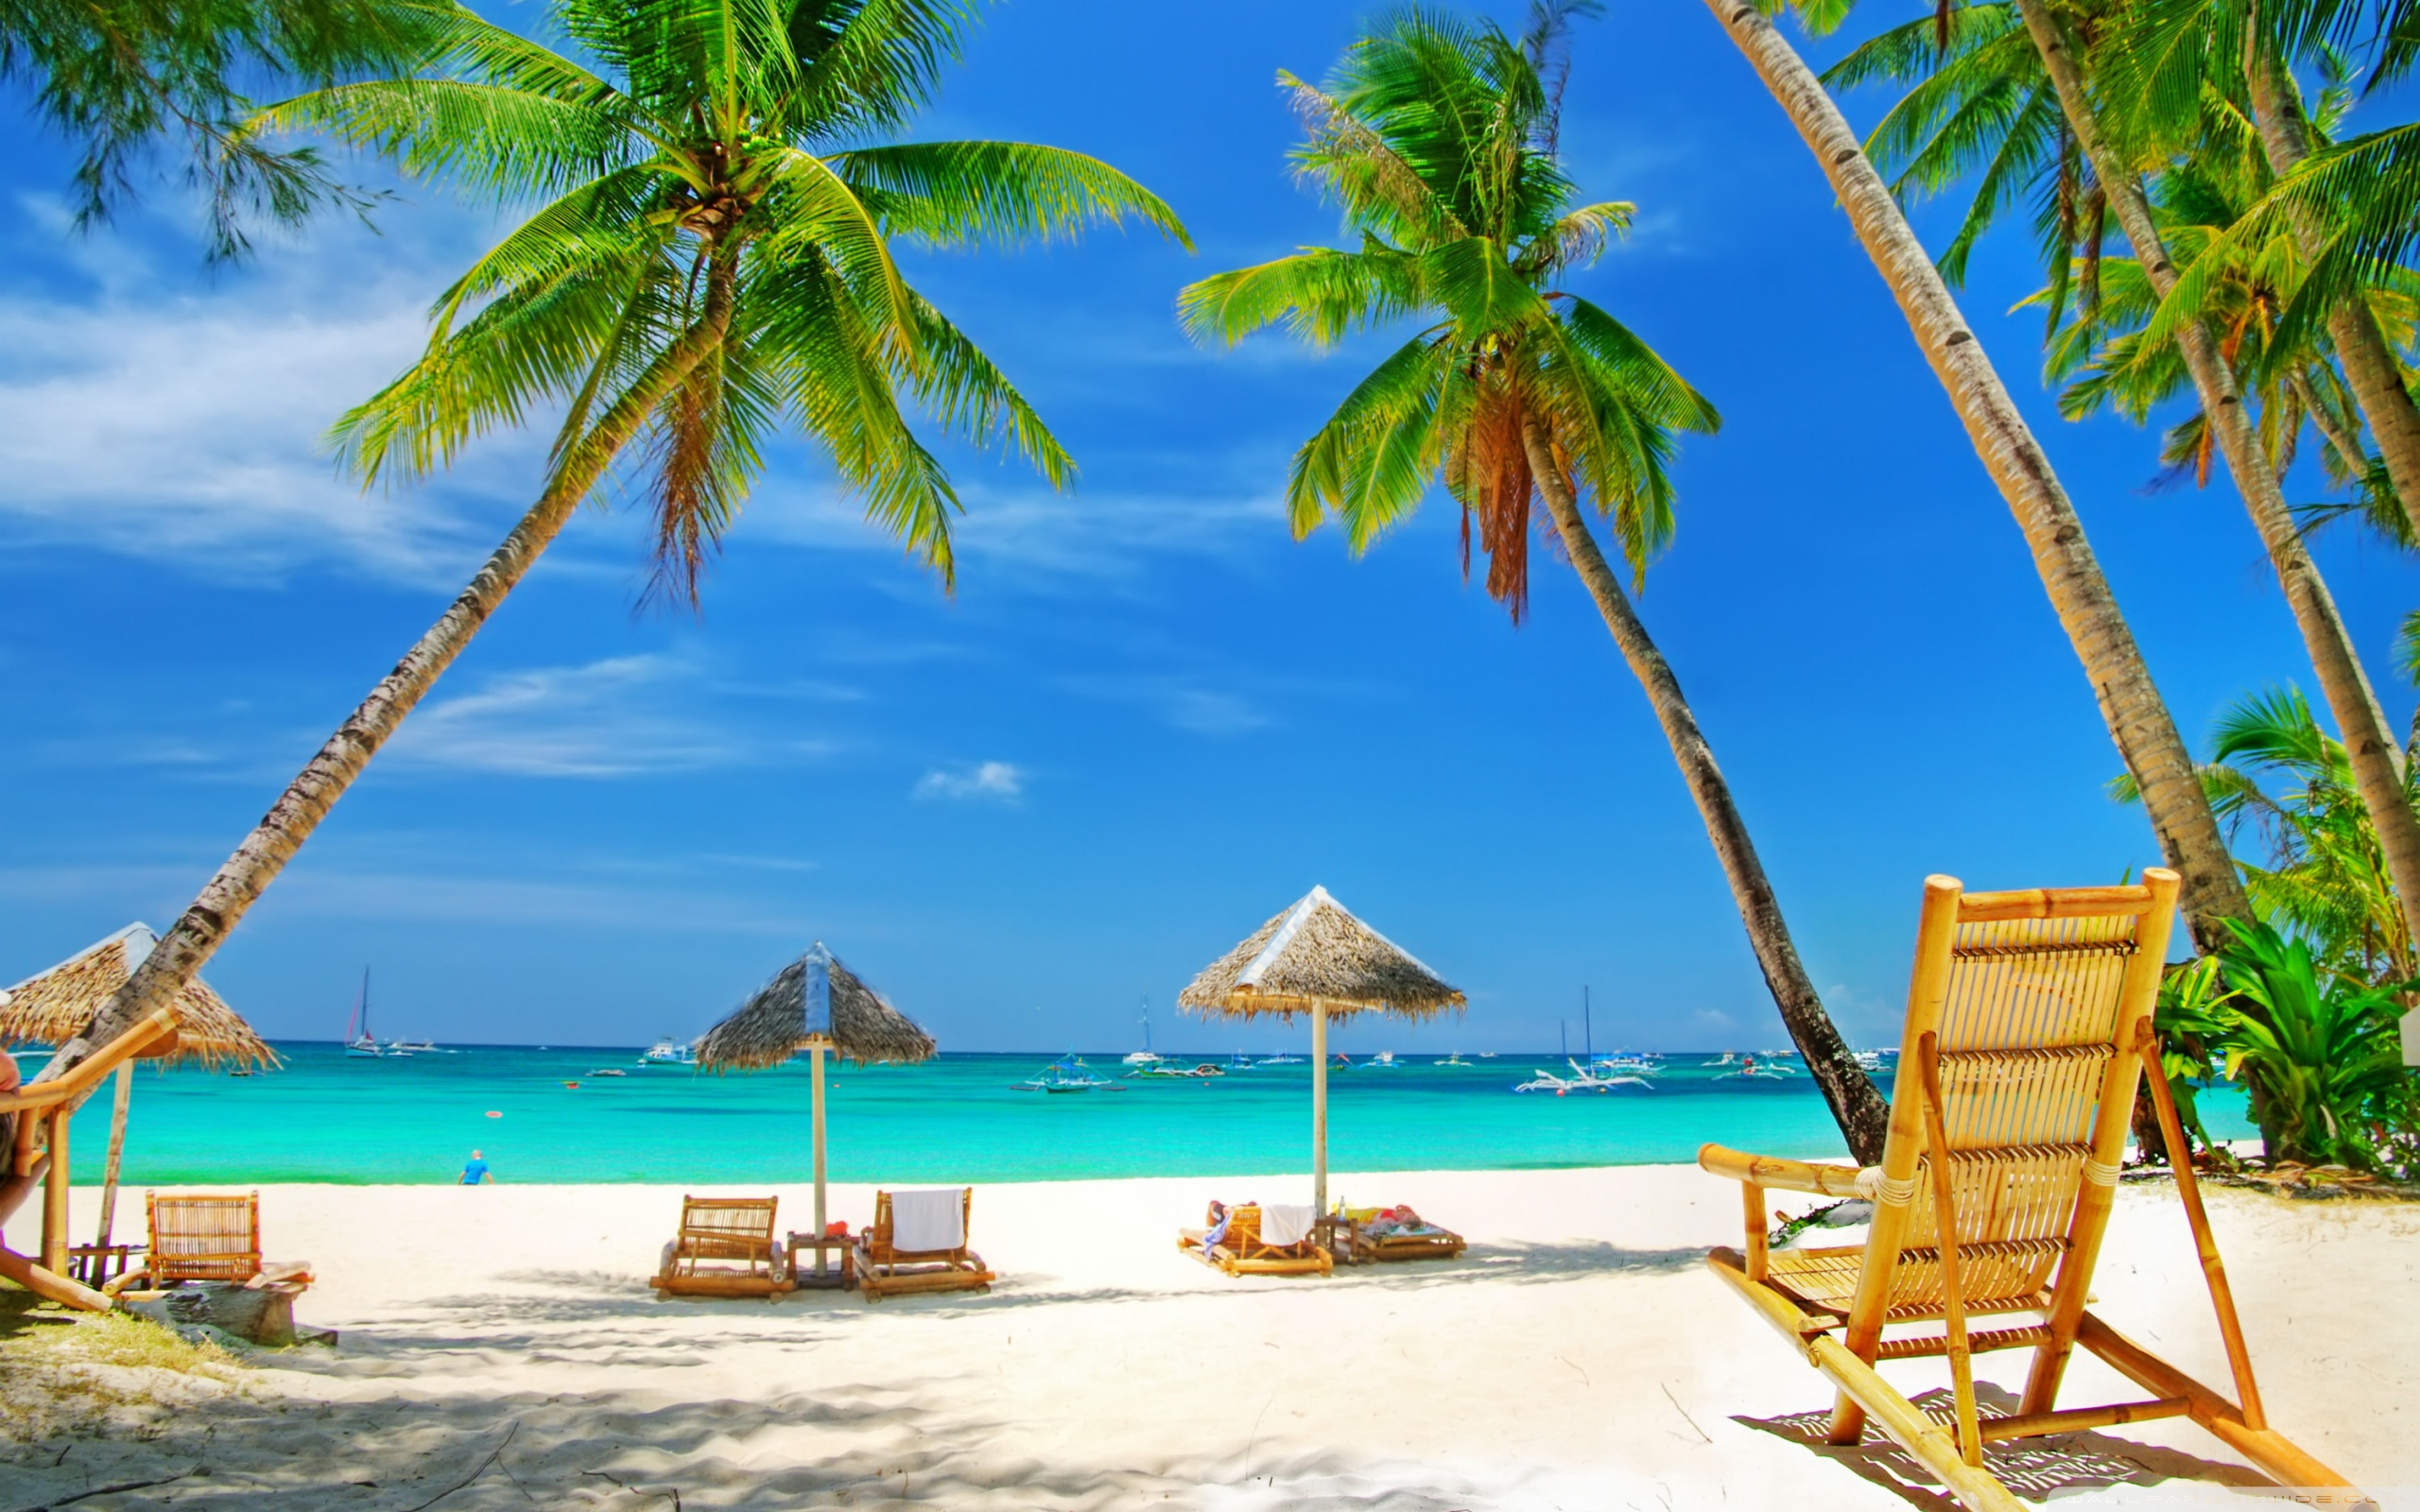 tropical_paradise_beach-wallpaper-2560x1600